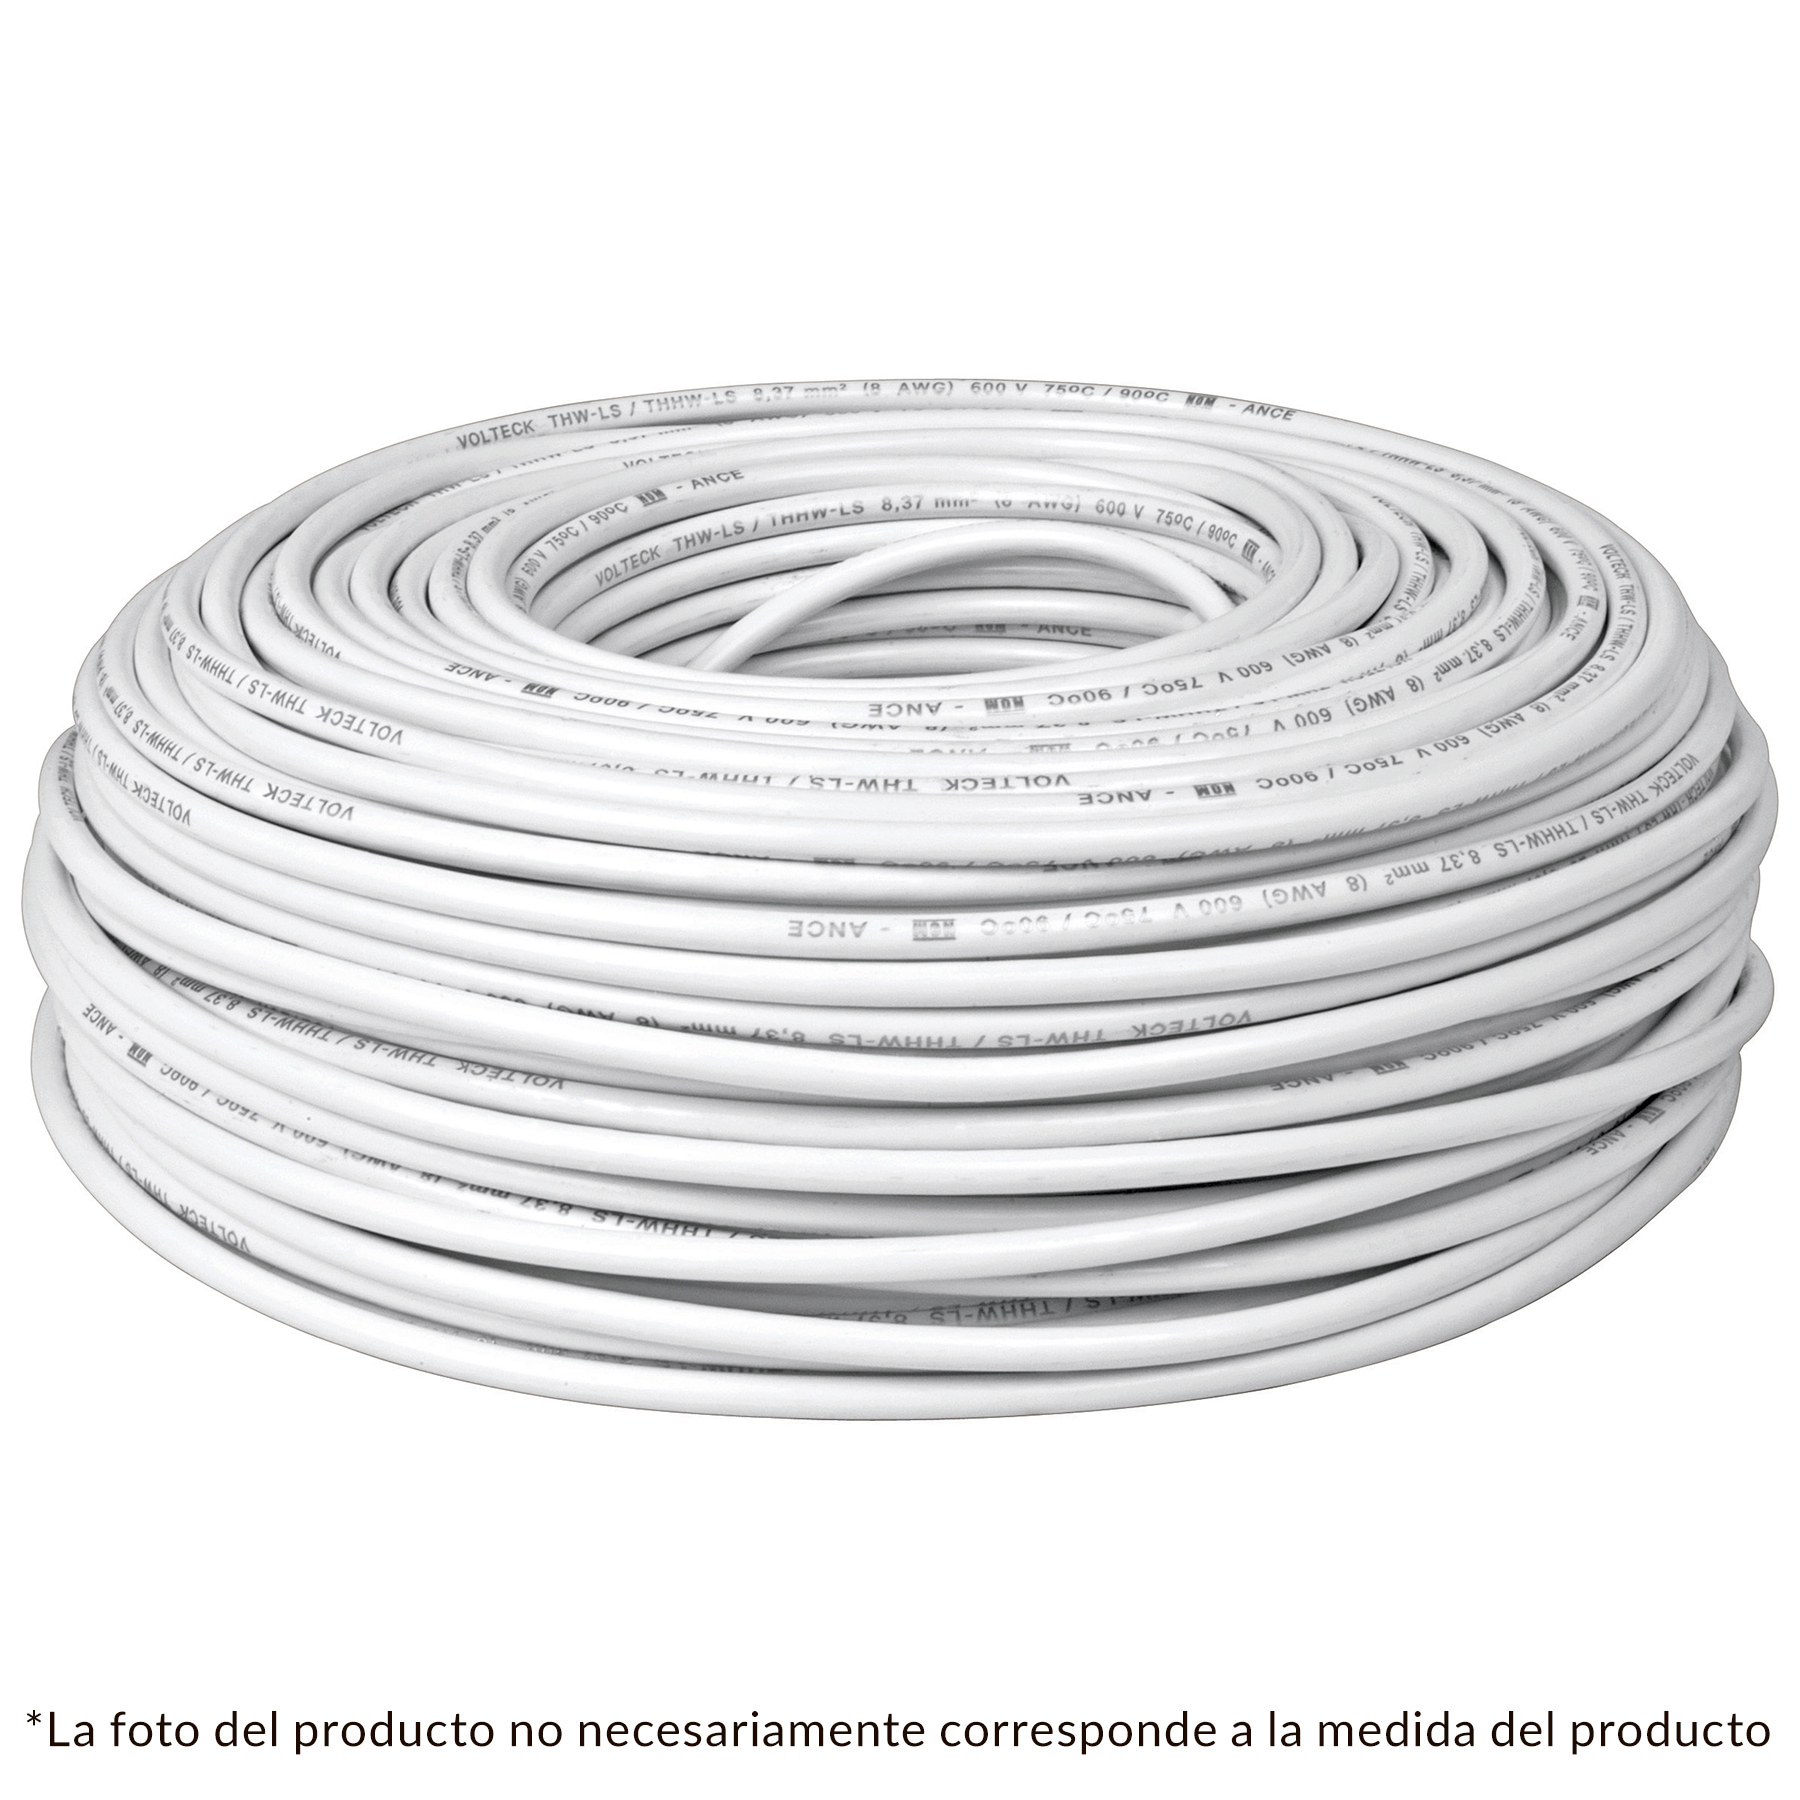 Cable THHW-LS, 10 AWG, color blanco rollo 100 m